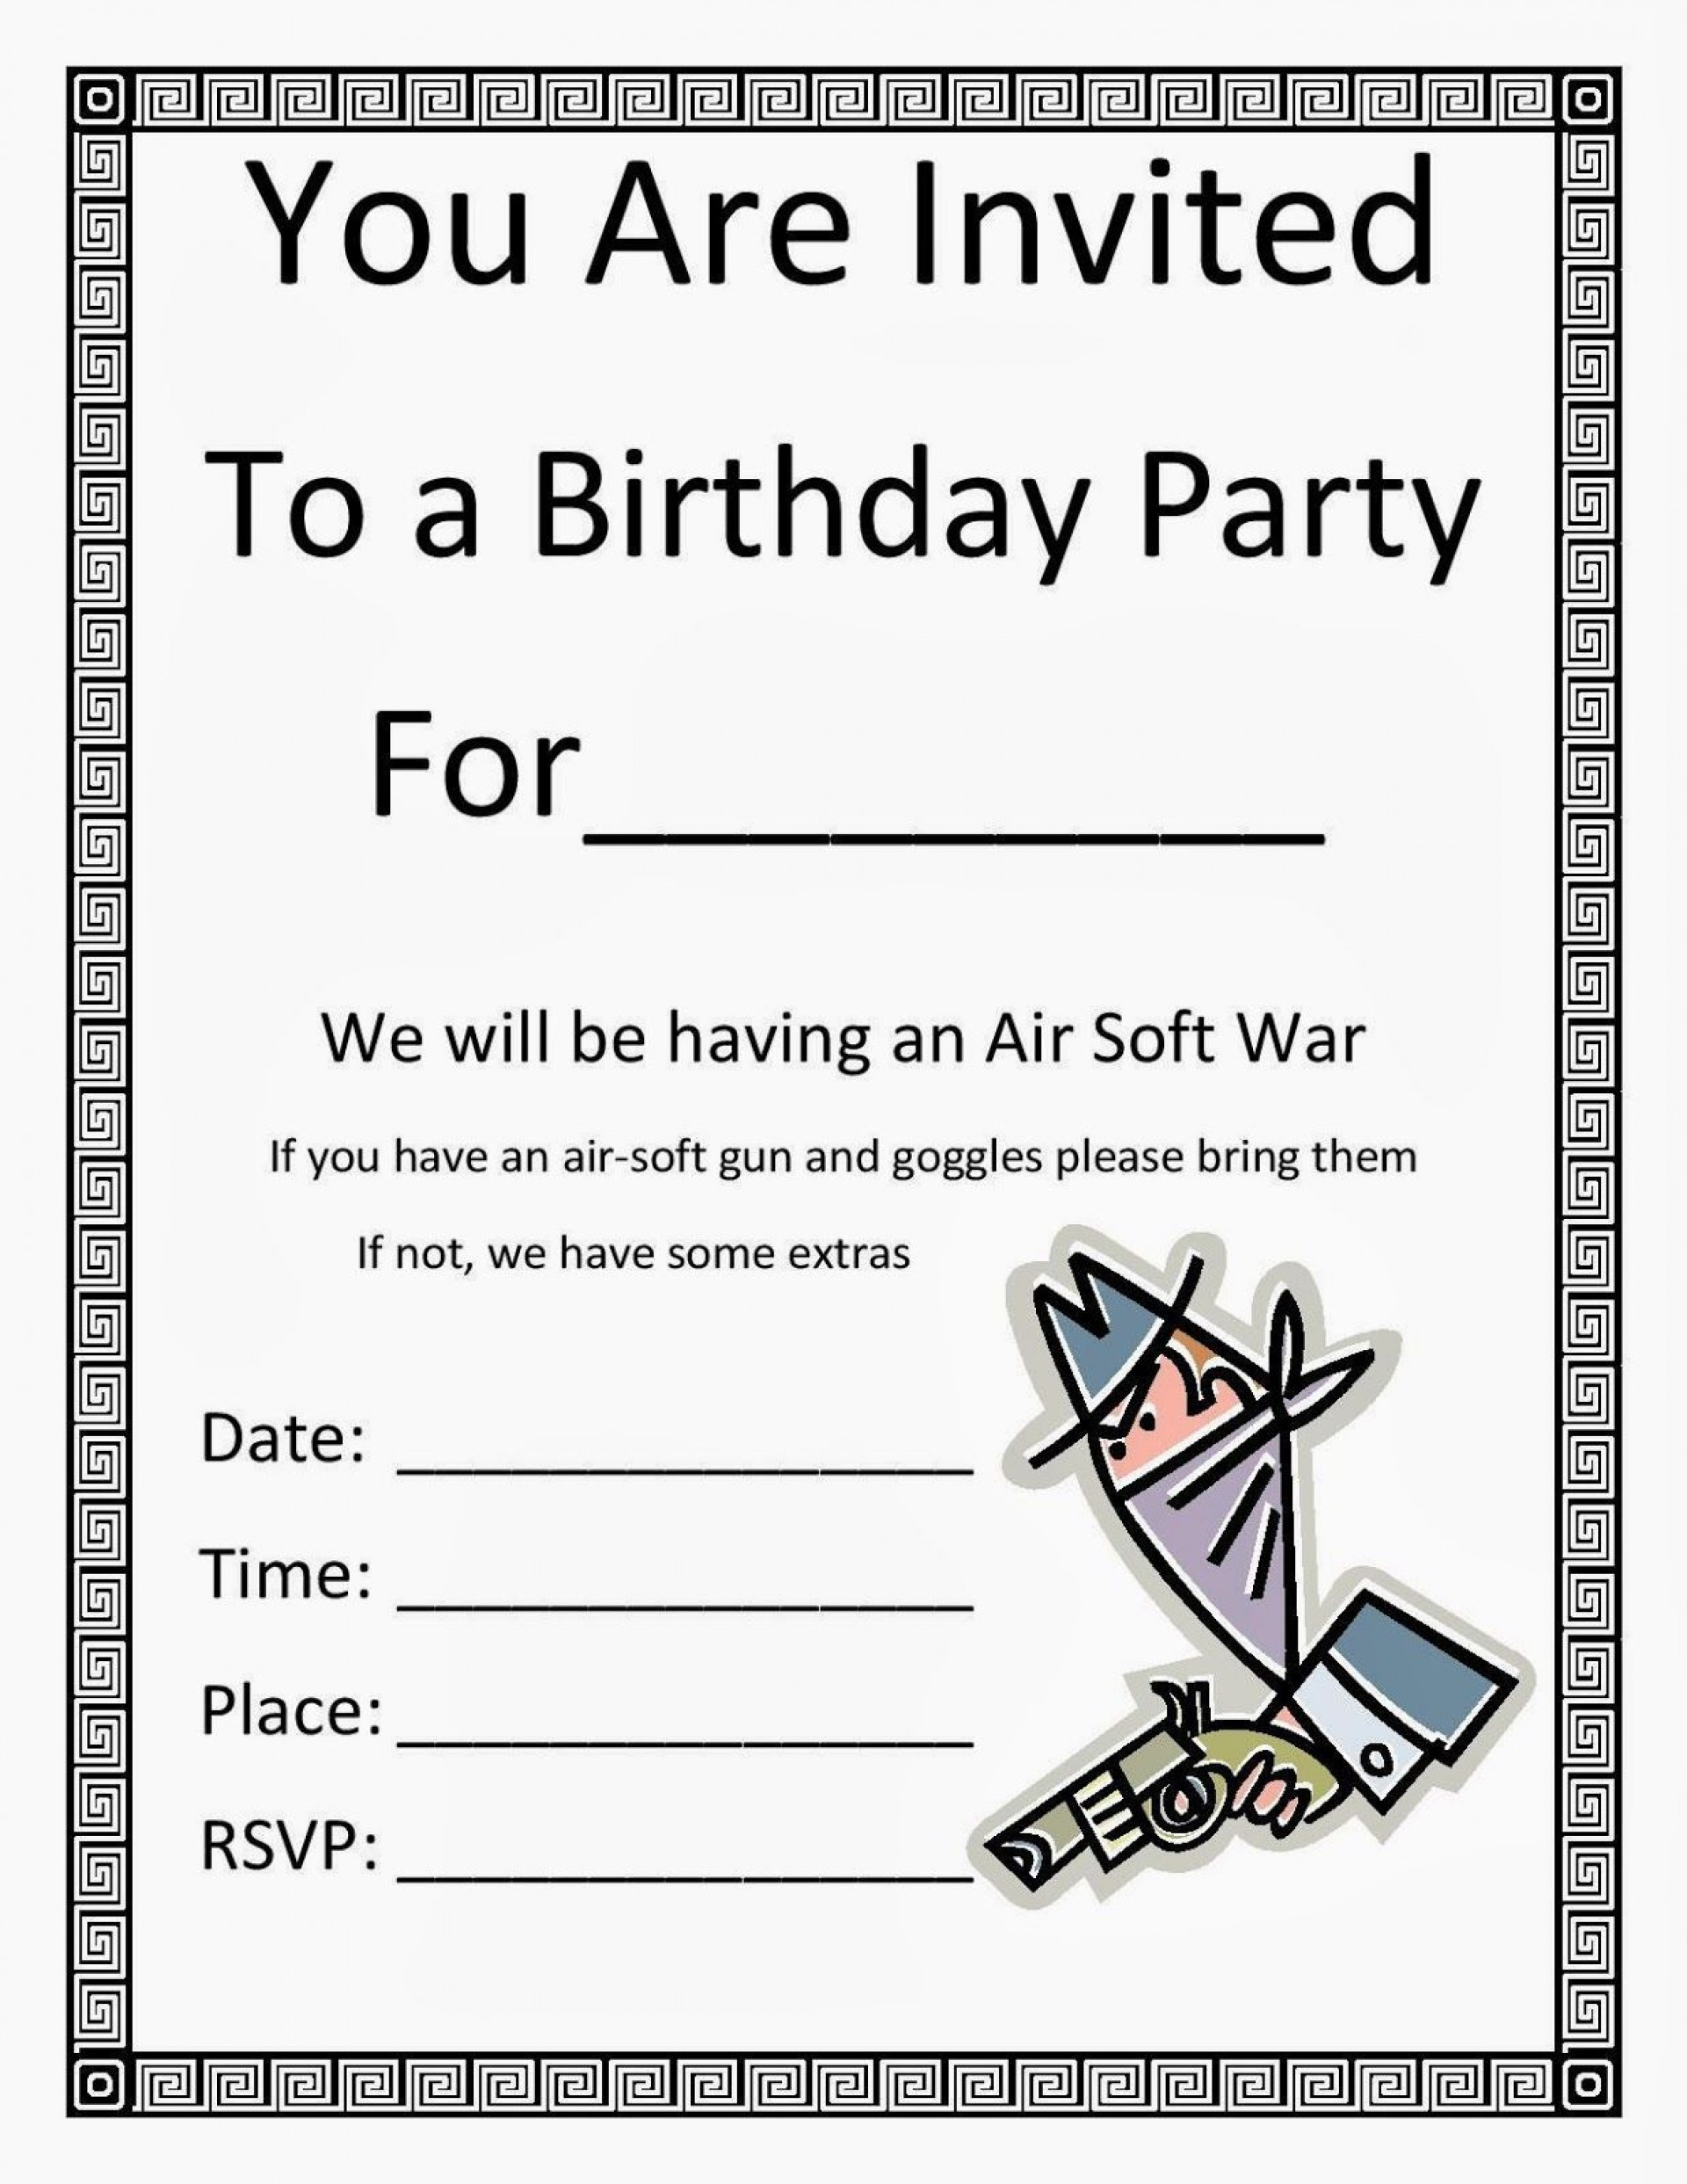 003 Exceptional Free Birthday Party Invitation Template For Word Sample 1920